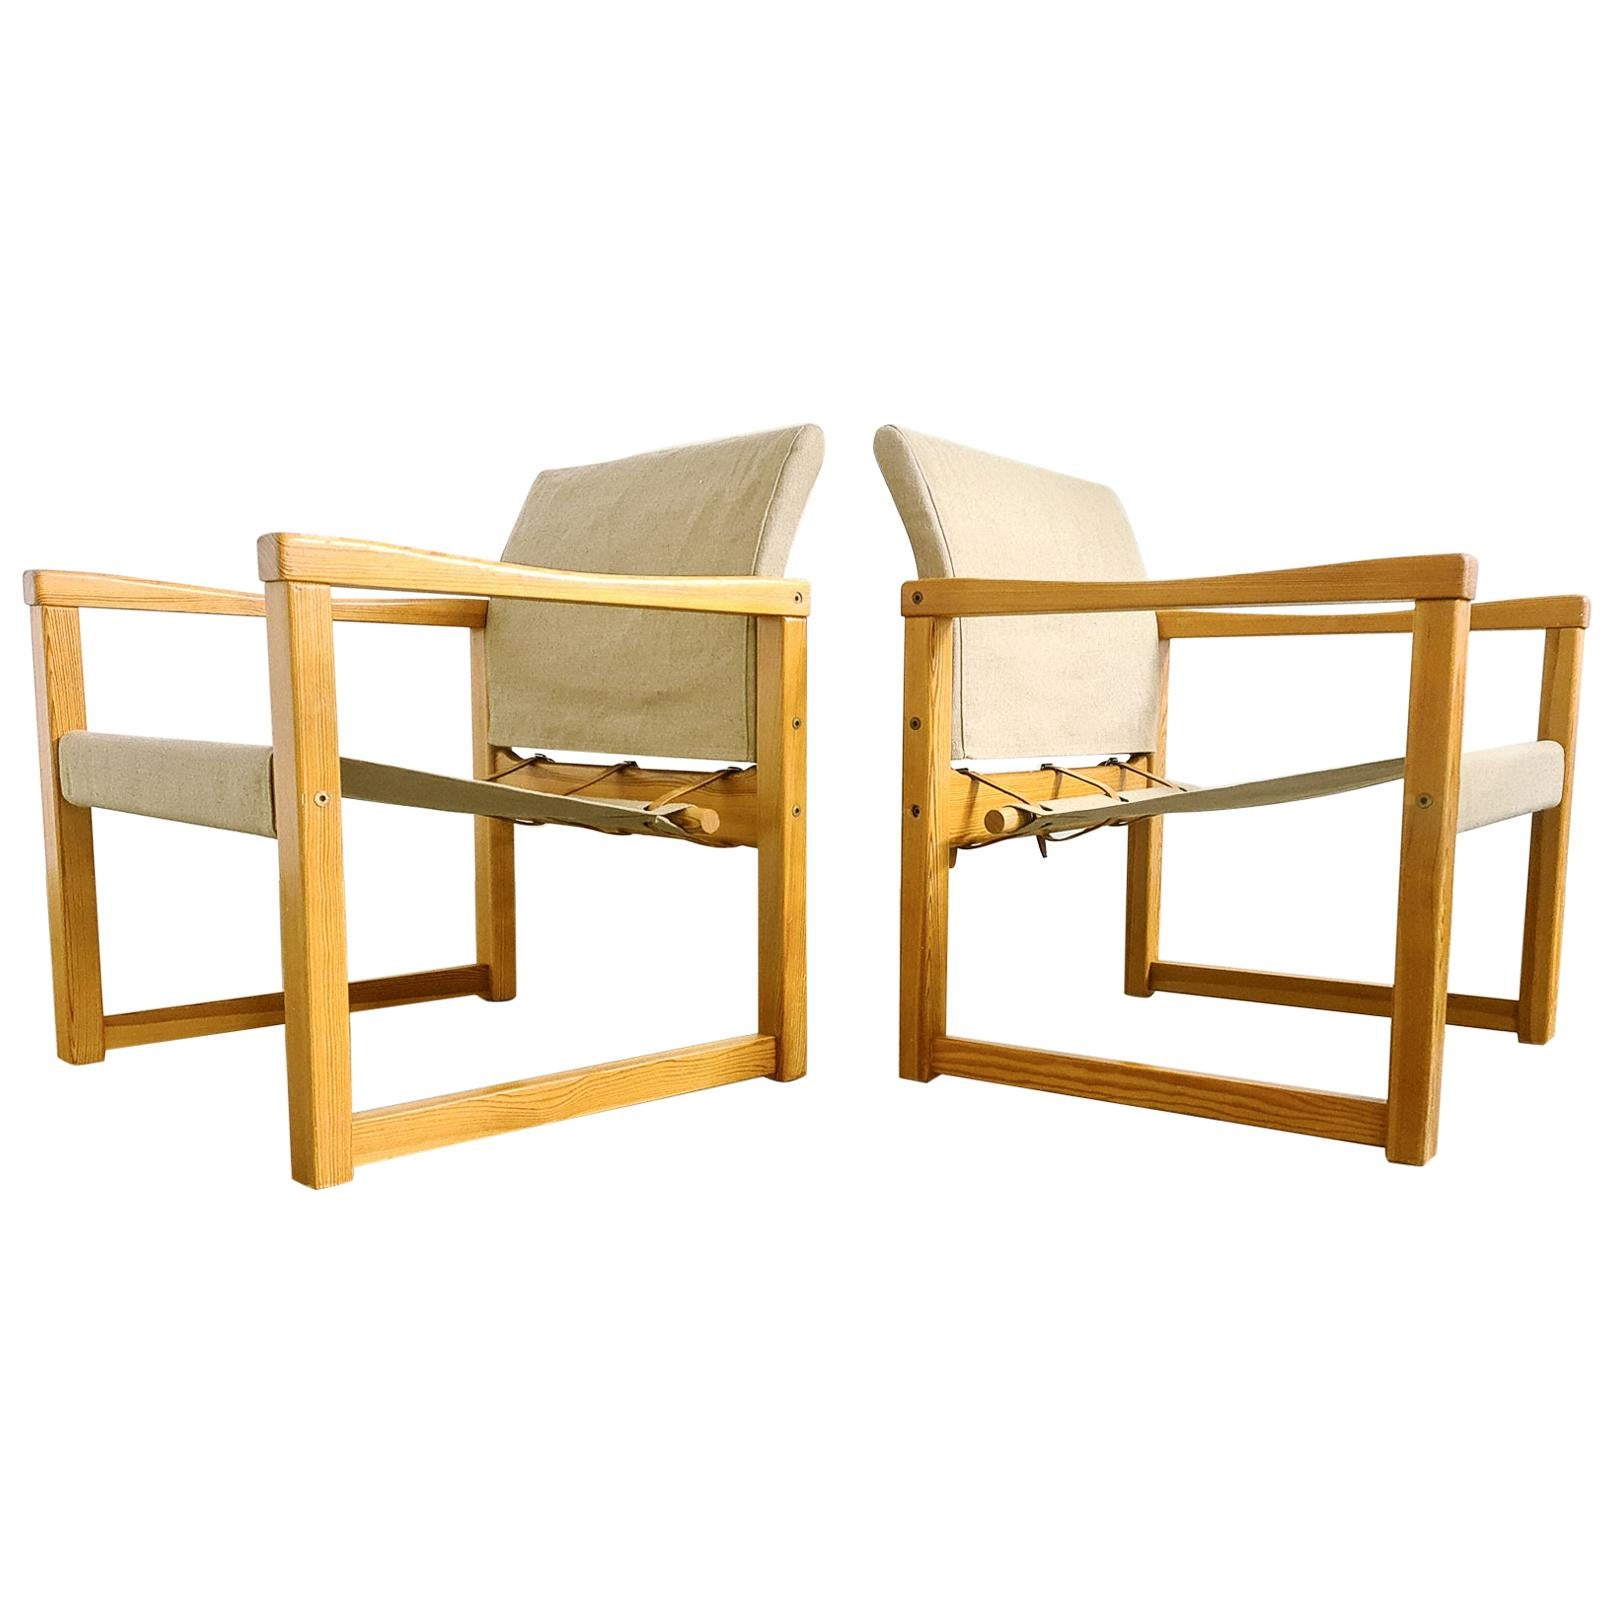 Karin Mobring Armchairs Model Diana by Ikea in Sweden, 1970s